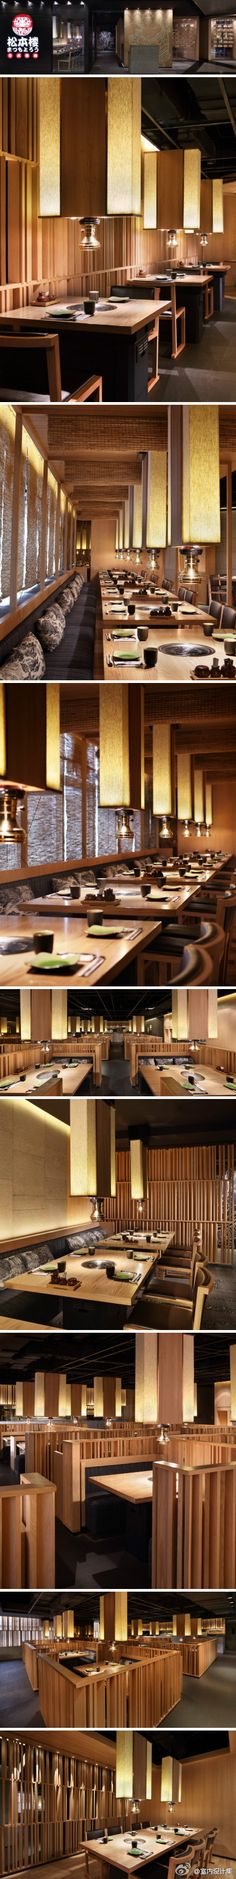 Matsumoto Restaurant ……by Golucci International Design